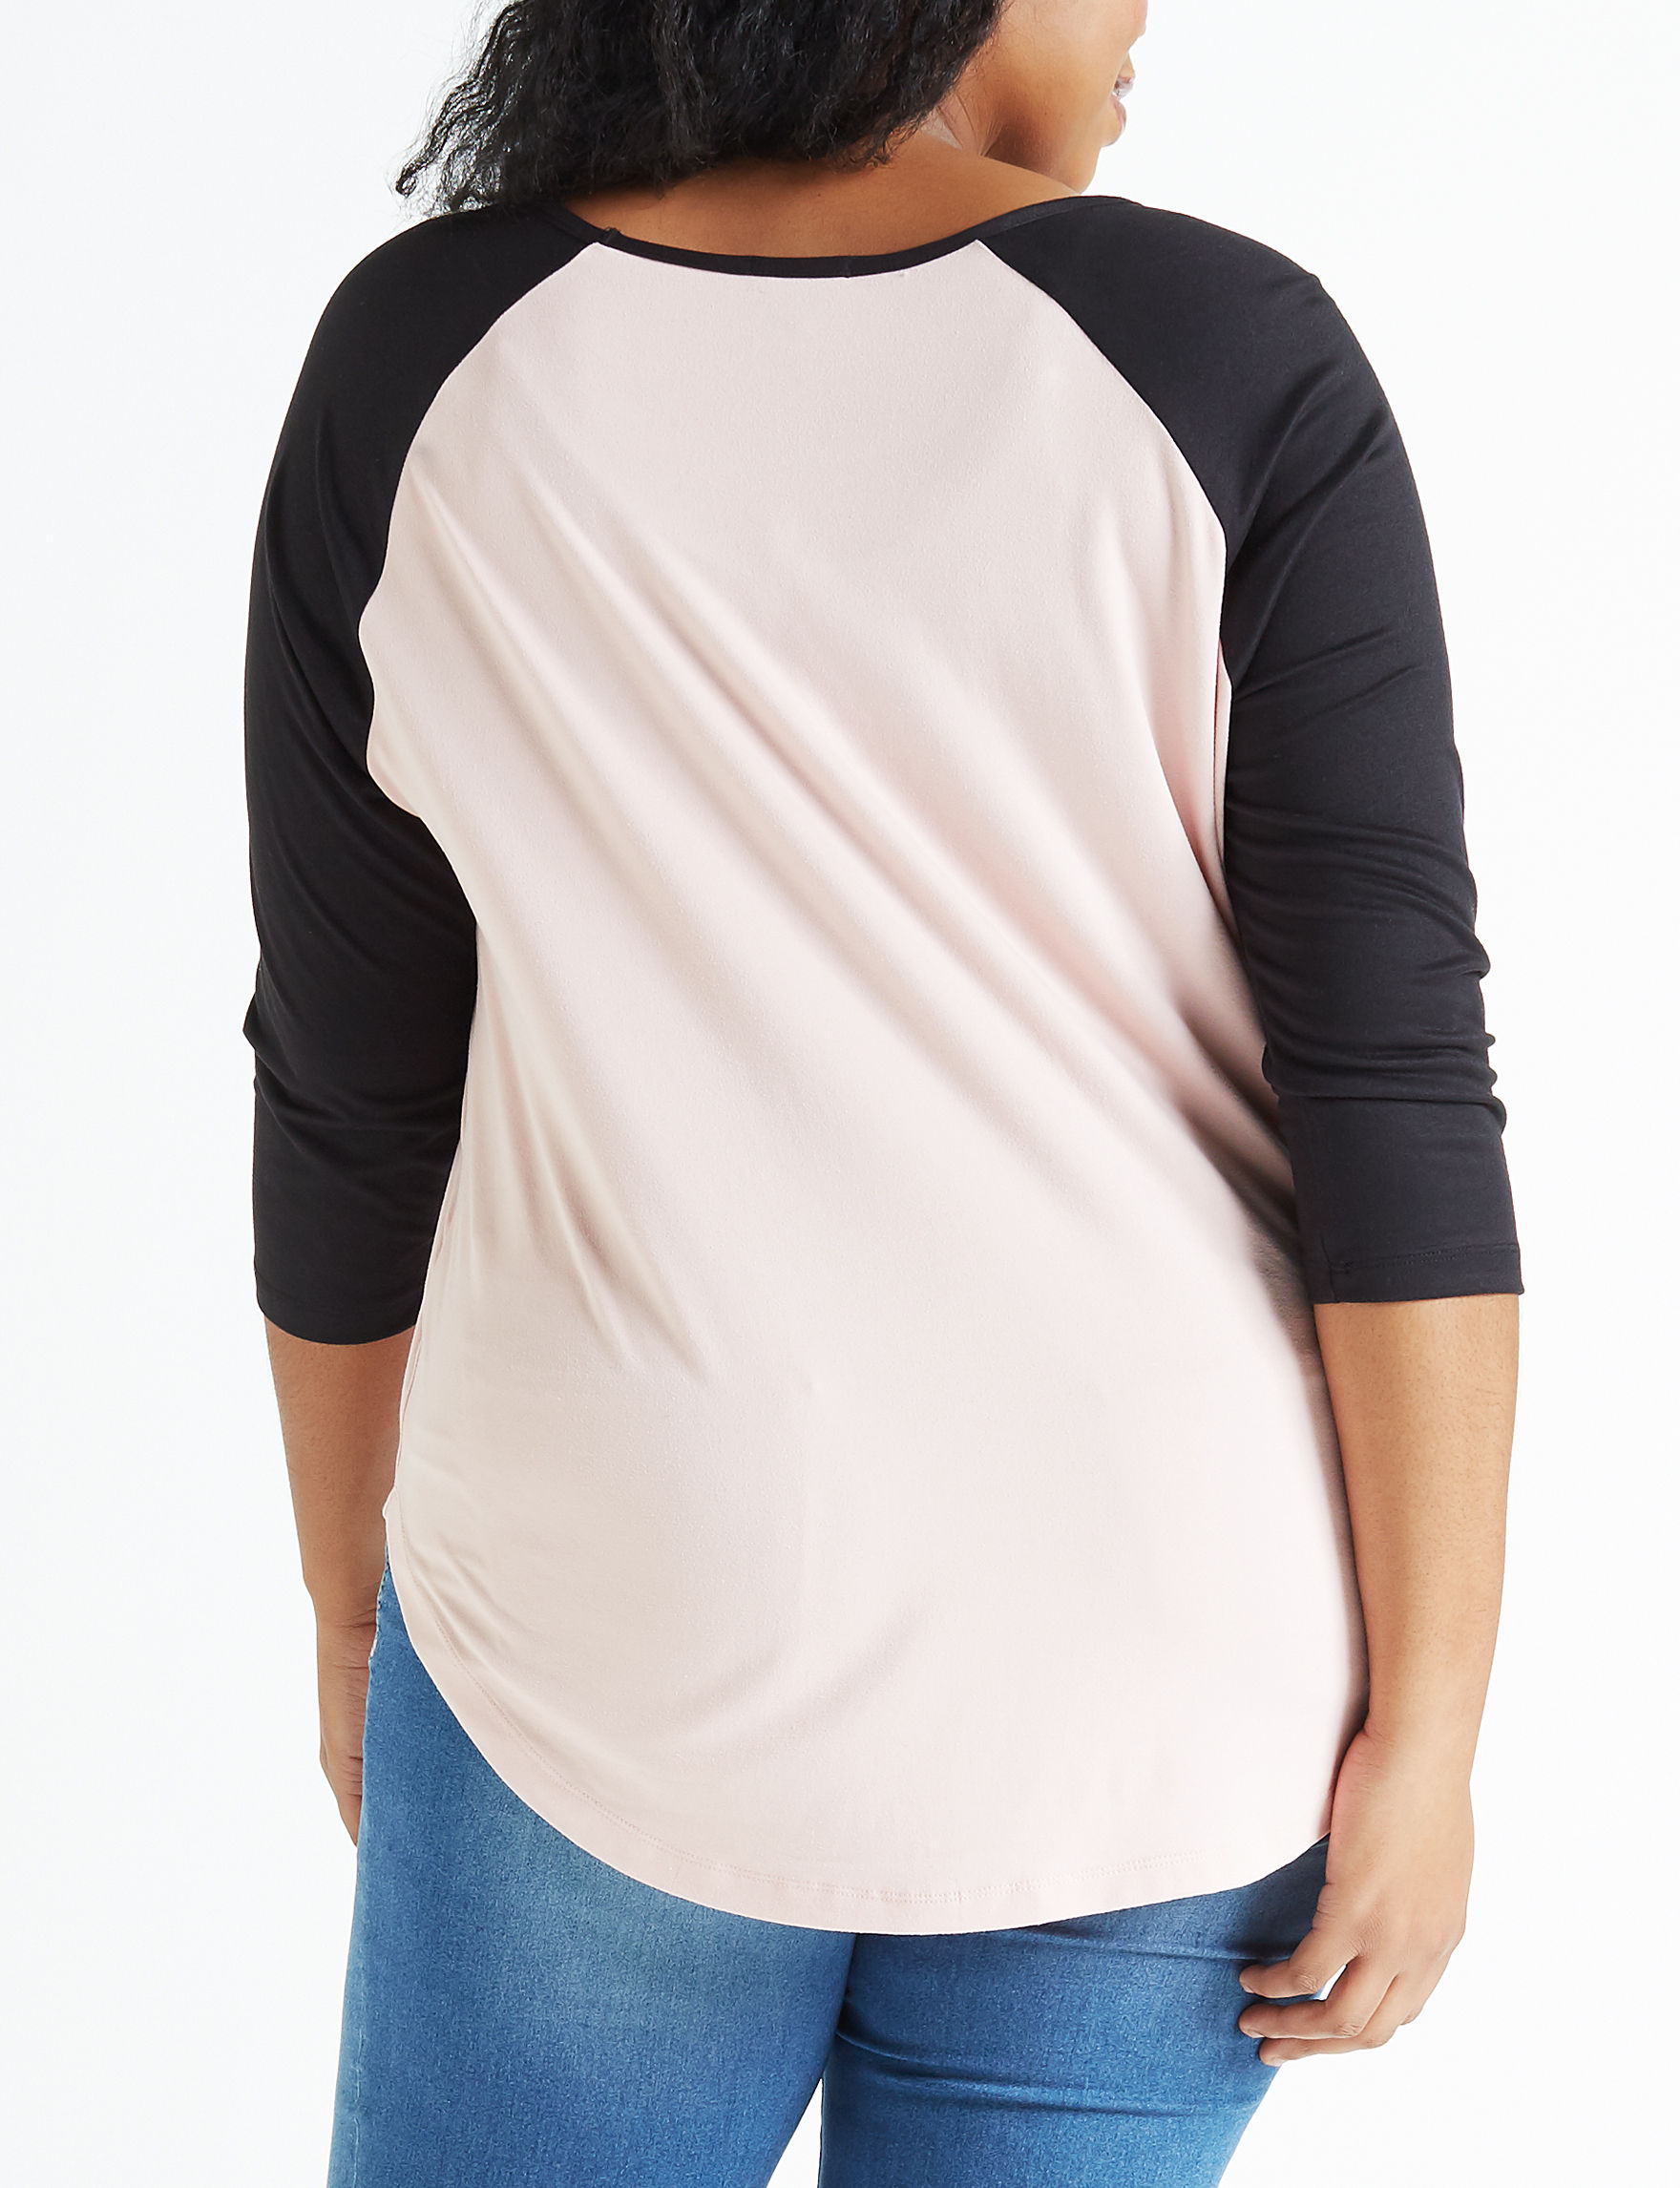 bd2b6e086 Justify Juniors' Plus Size Love Color Block Raglan Top | Stage Stores